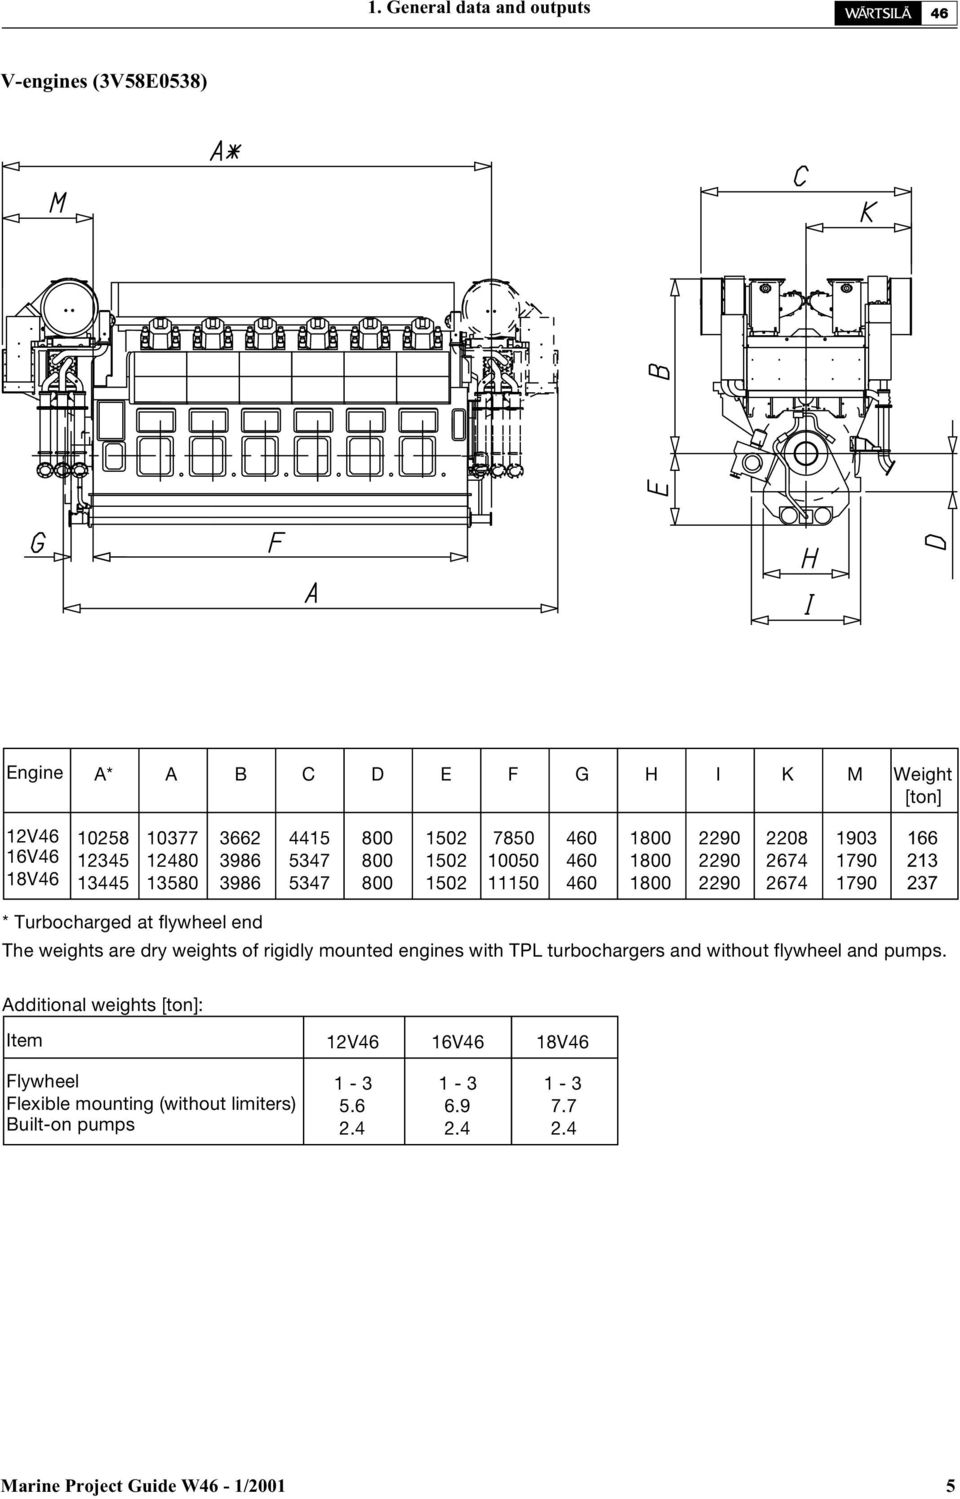 Project Guide For Marine Applications Pdf Cat Turbocharger Diagram Of Engine Turbocharged At Flywheel End The Weights Are Dry Rigidly Mounted Engines With Tpl Turbochargers